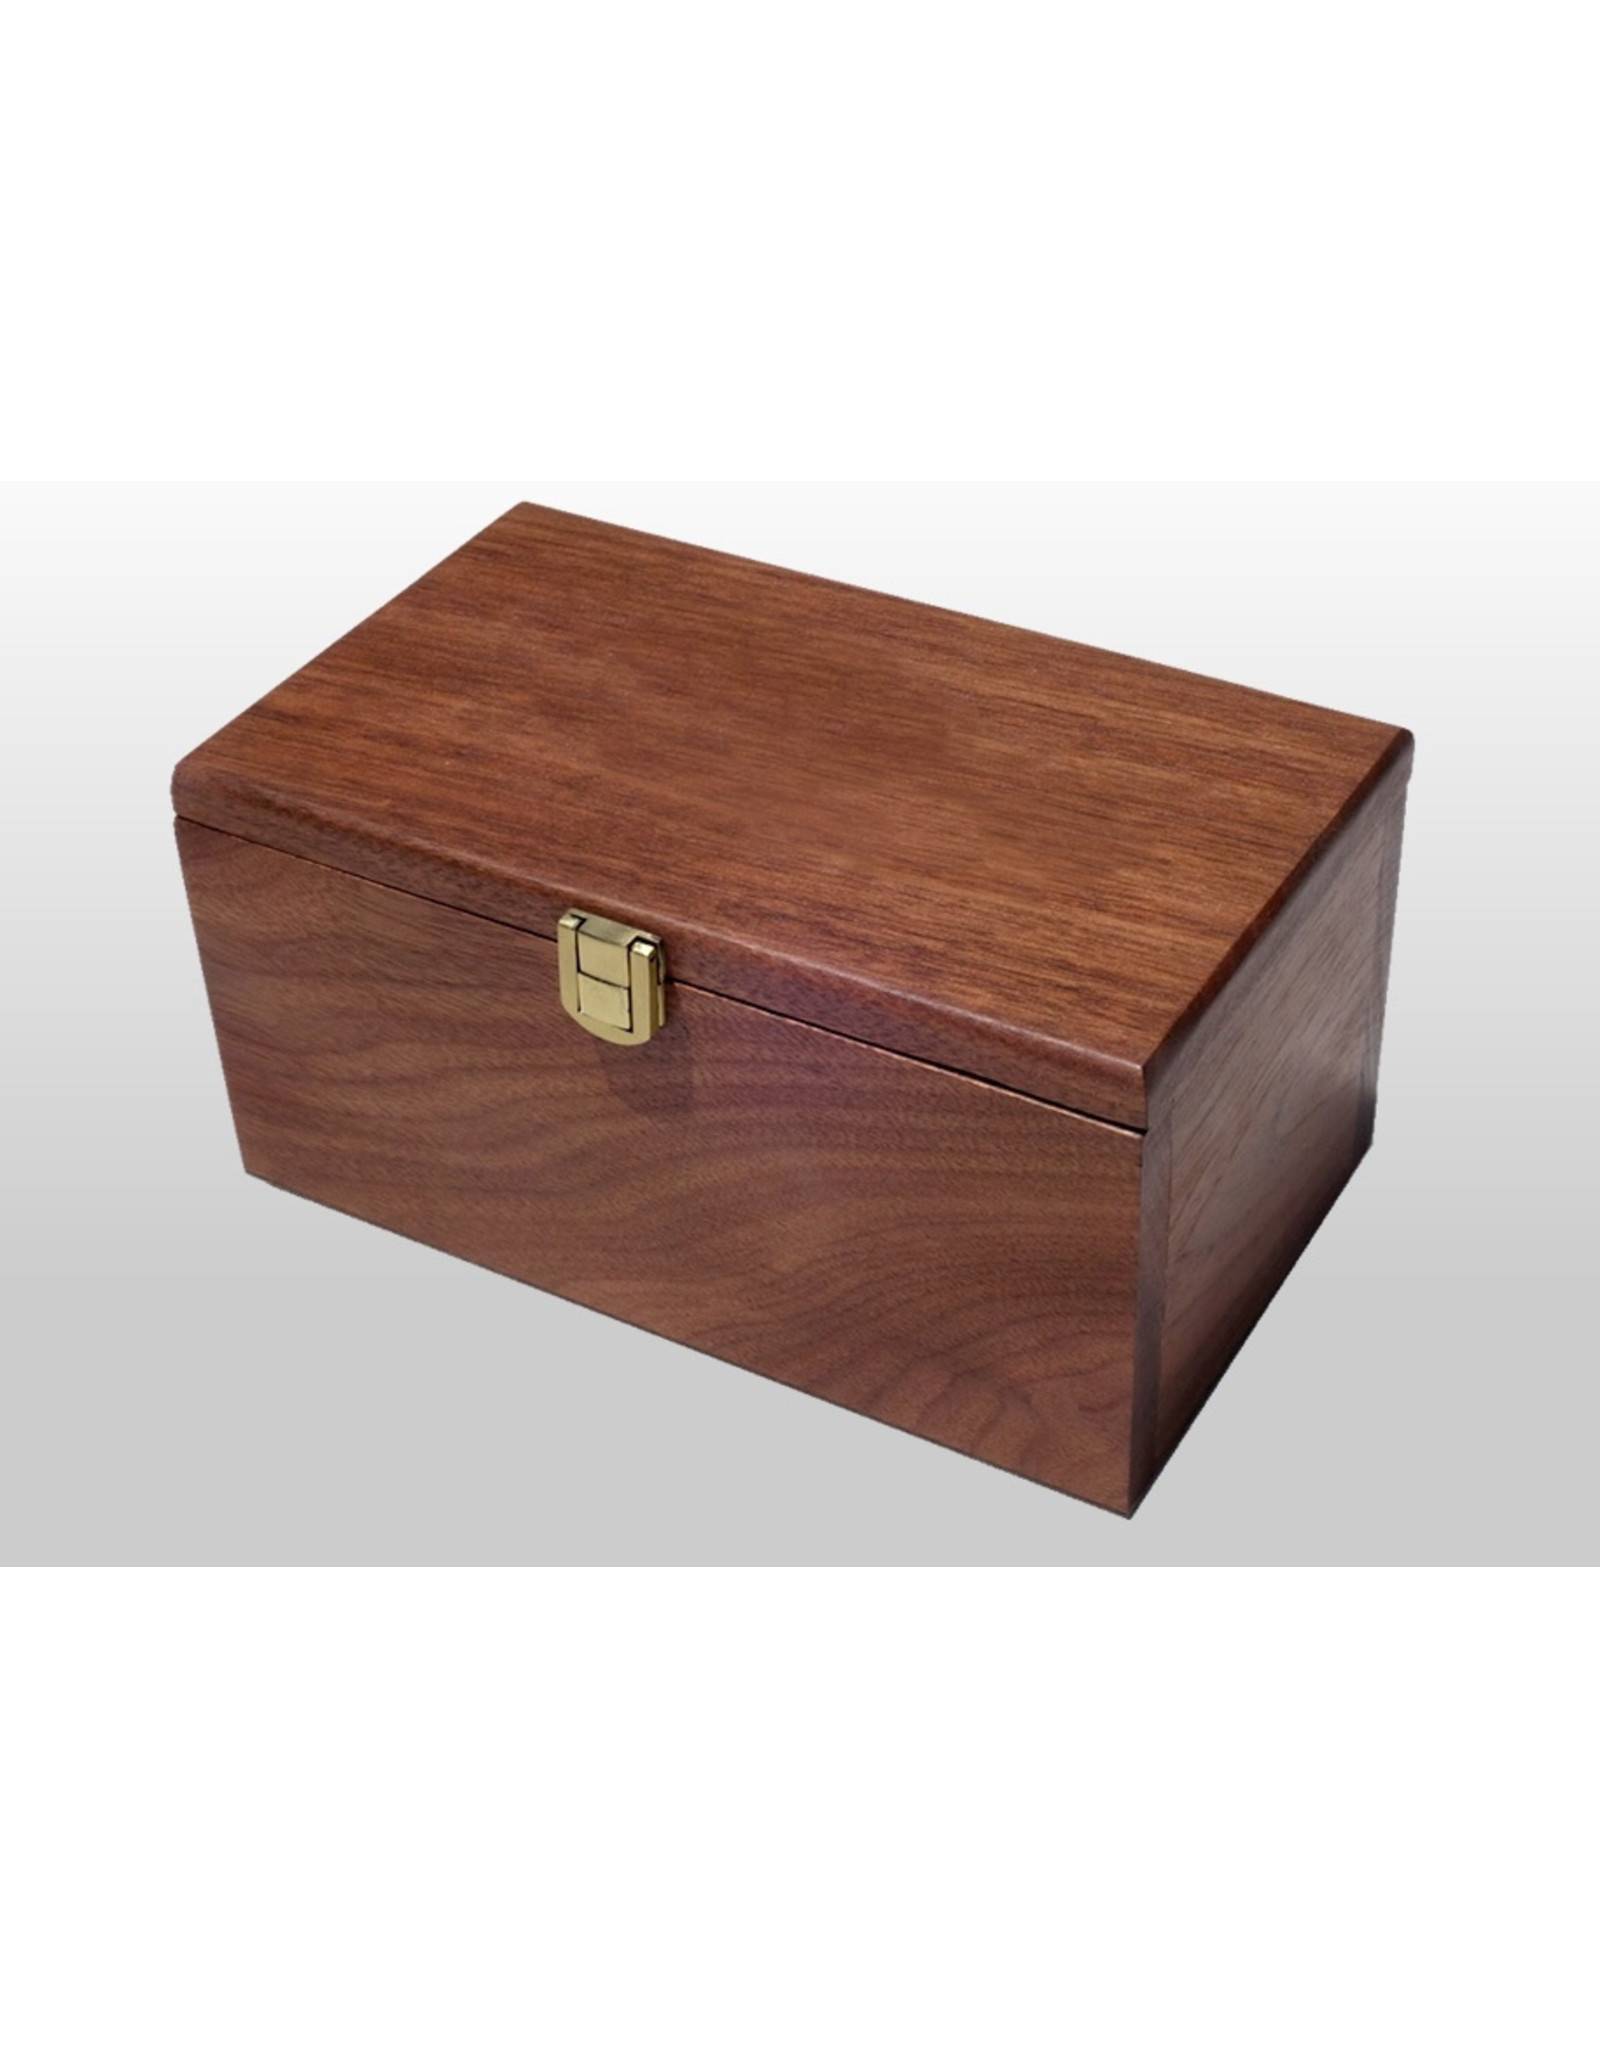 Alex Cramer Co. Golden Gate Dice Cups in Presentation Case